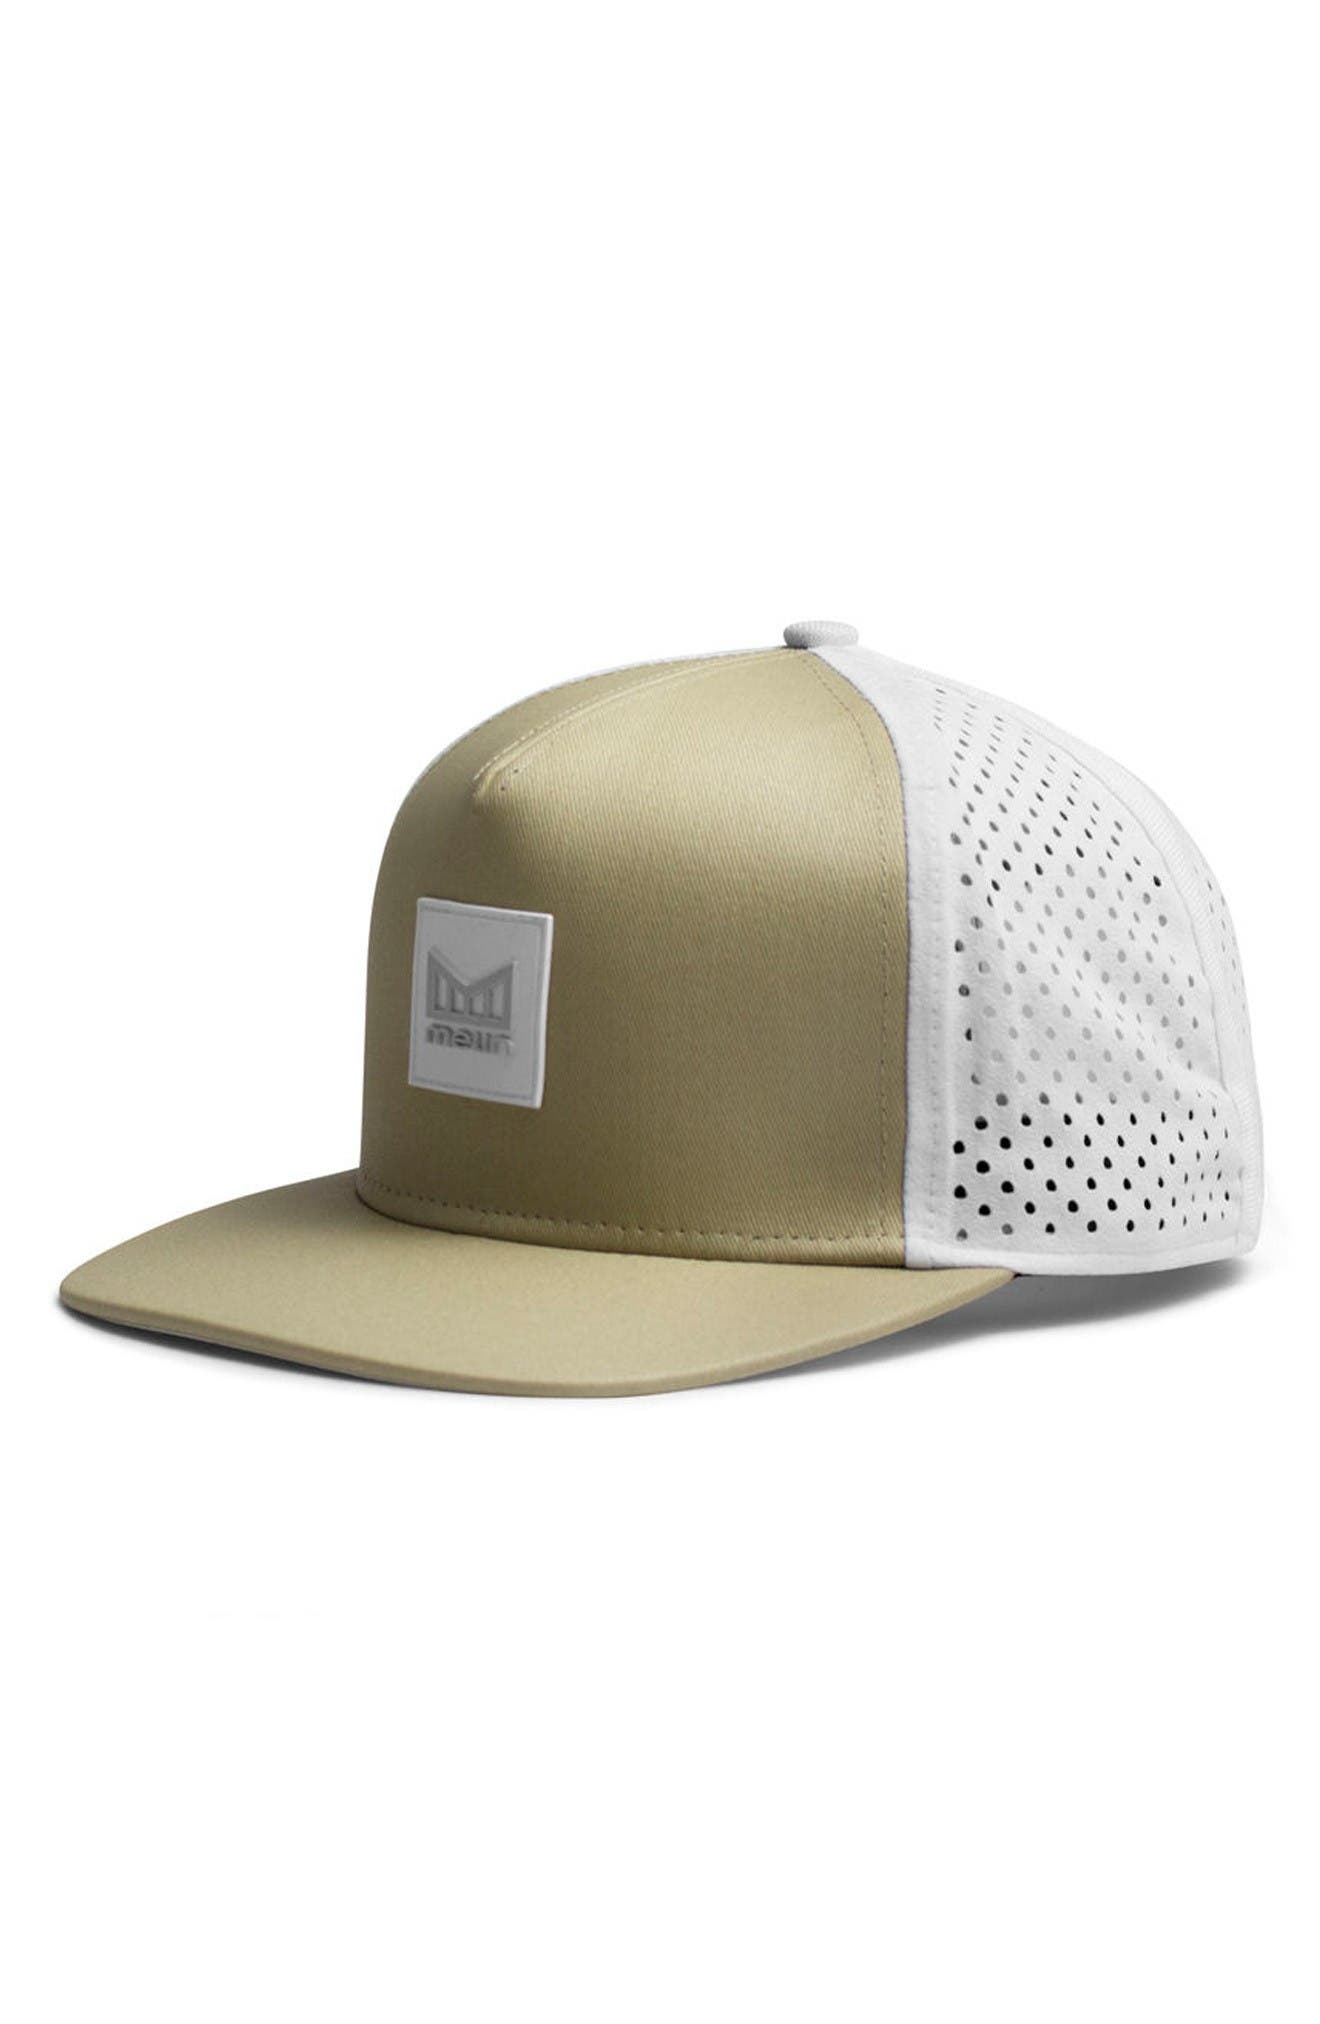 'The Nomad' Split Fit Snapback Baseball Cap,                         Main,                         color, Sand